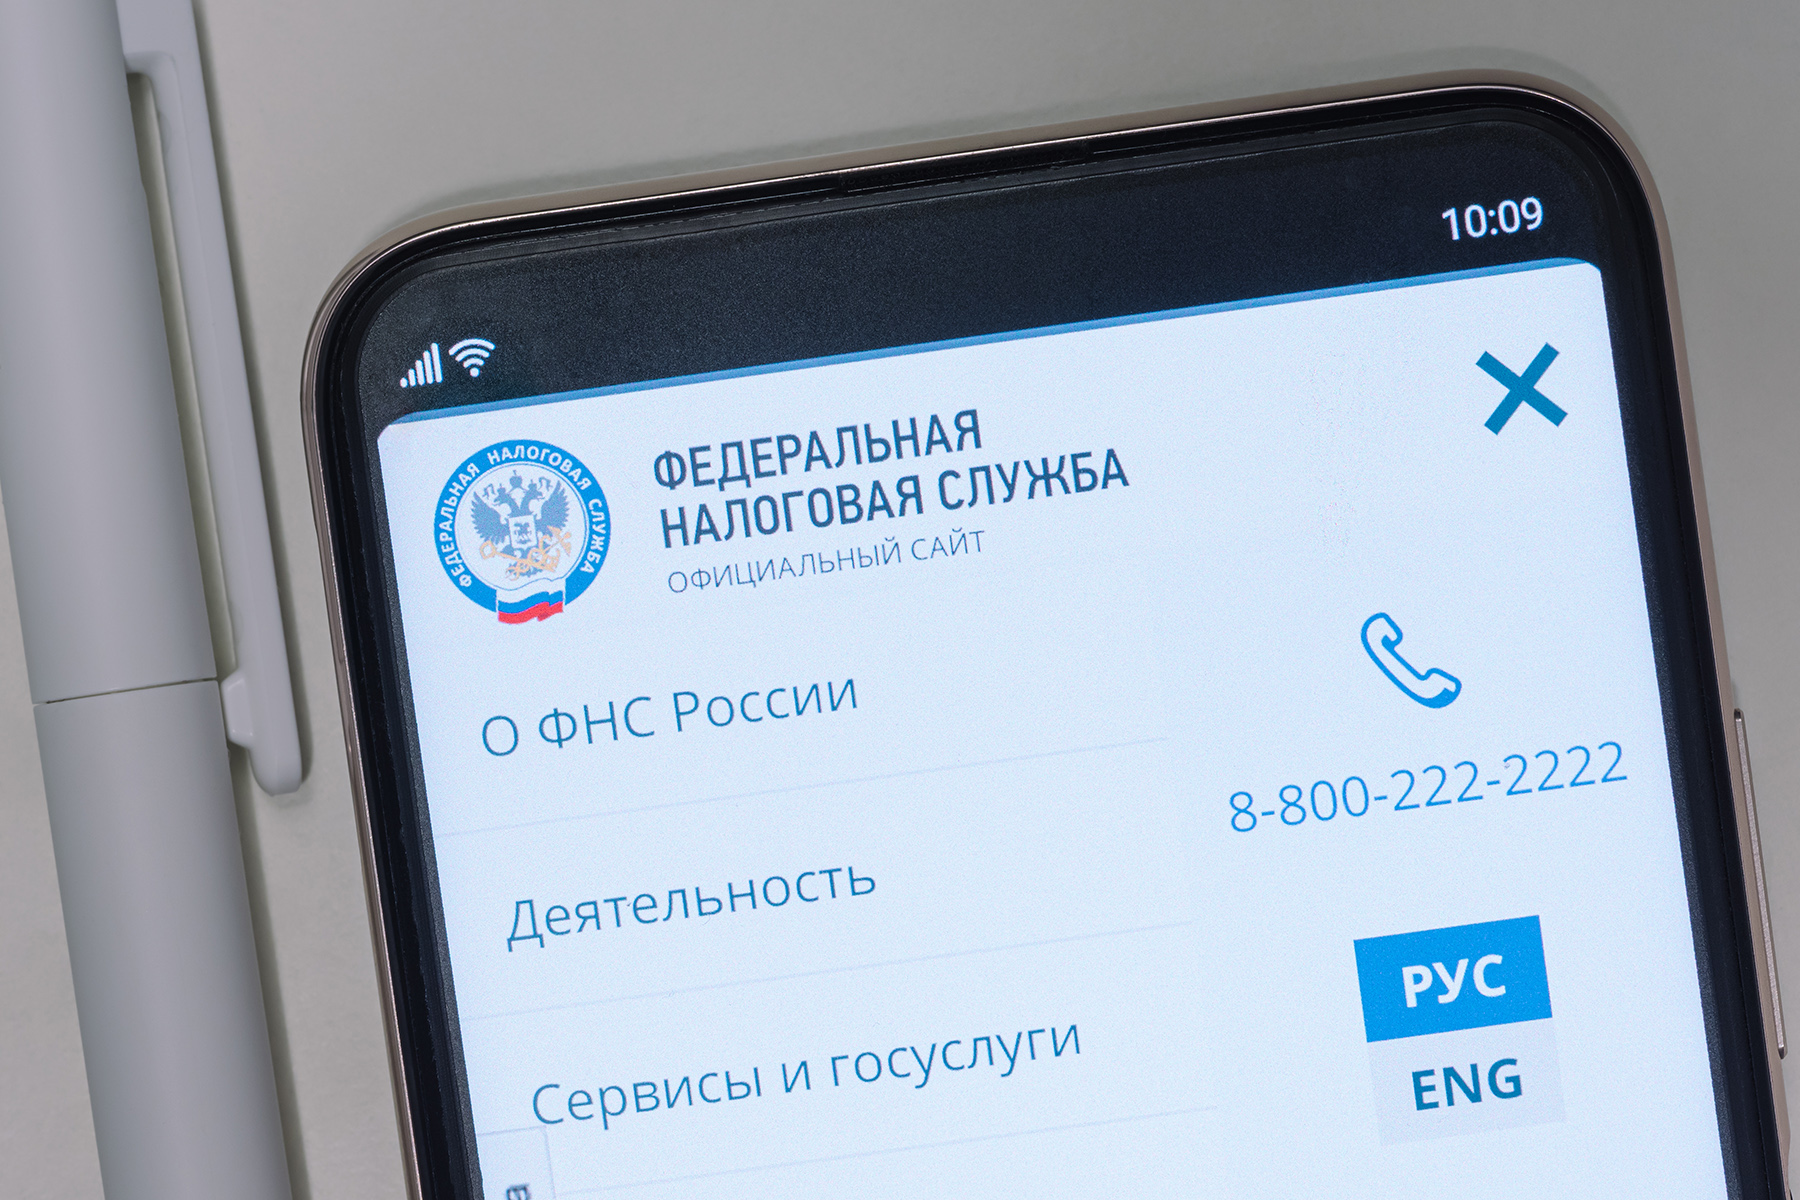 Website of the Federal Tax Service of Russia on a smartphone